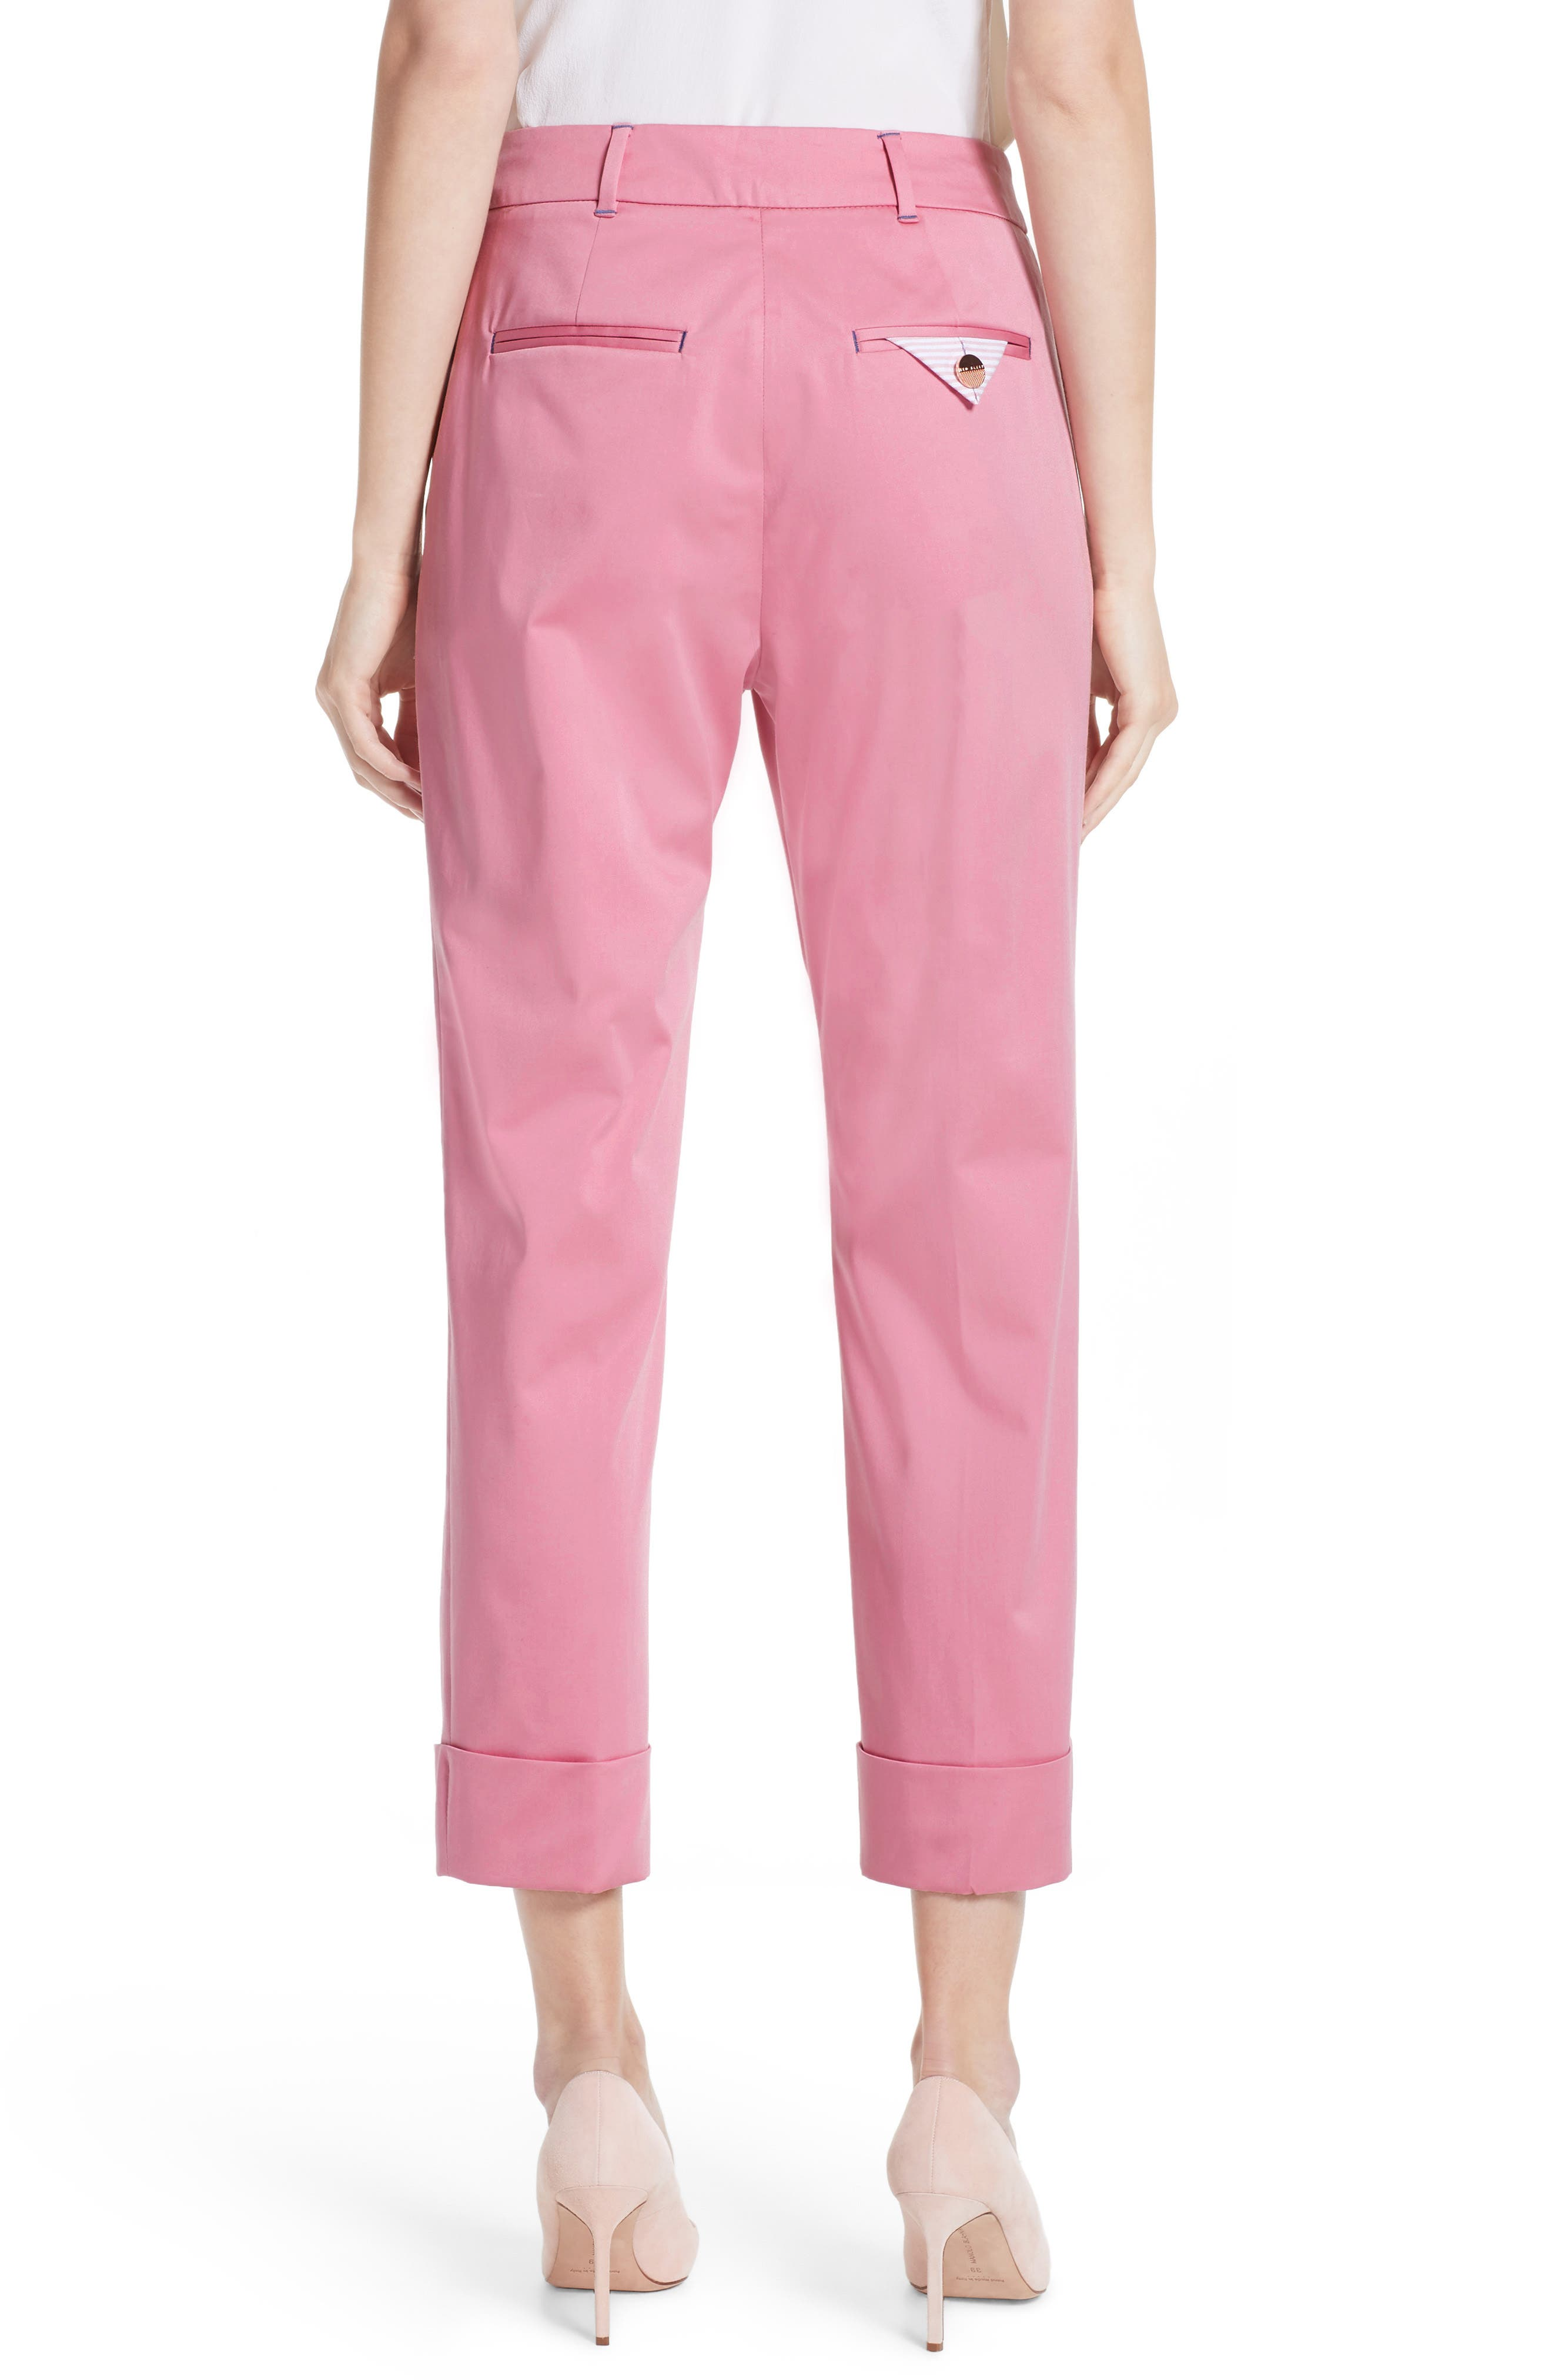 Saydii Deep Cuff Stretch Cotton Chino Pants,                             Alternate thumbnail 2, color,                             652